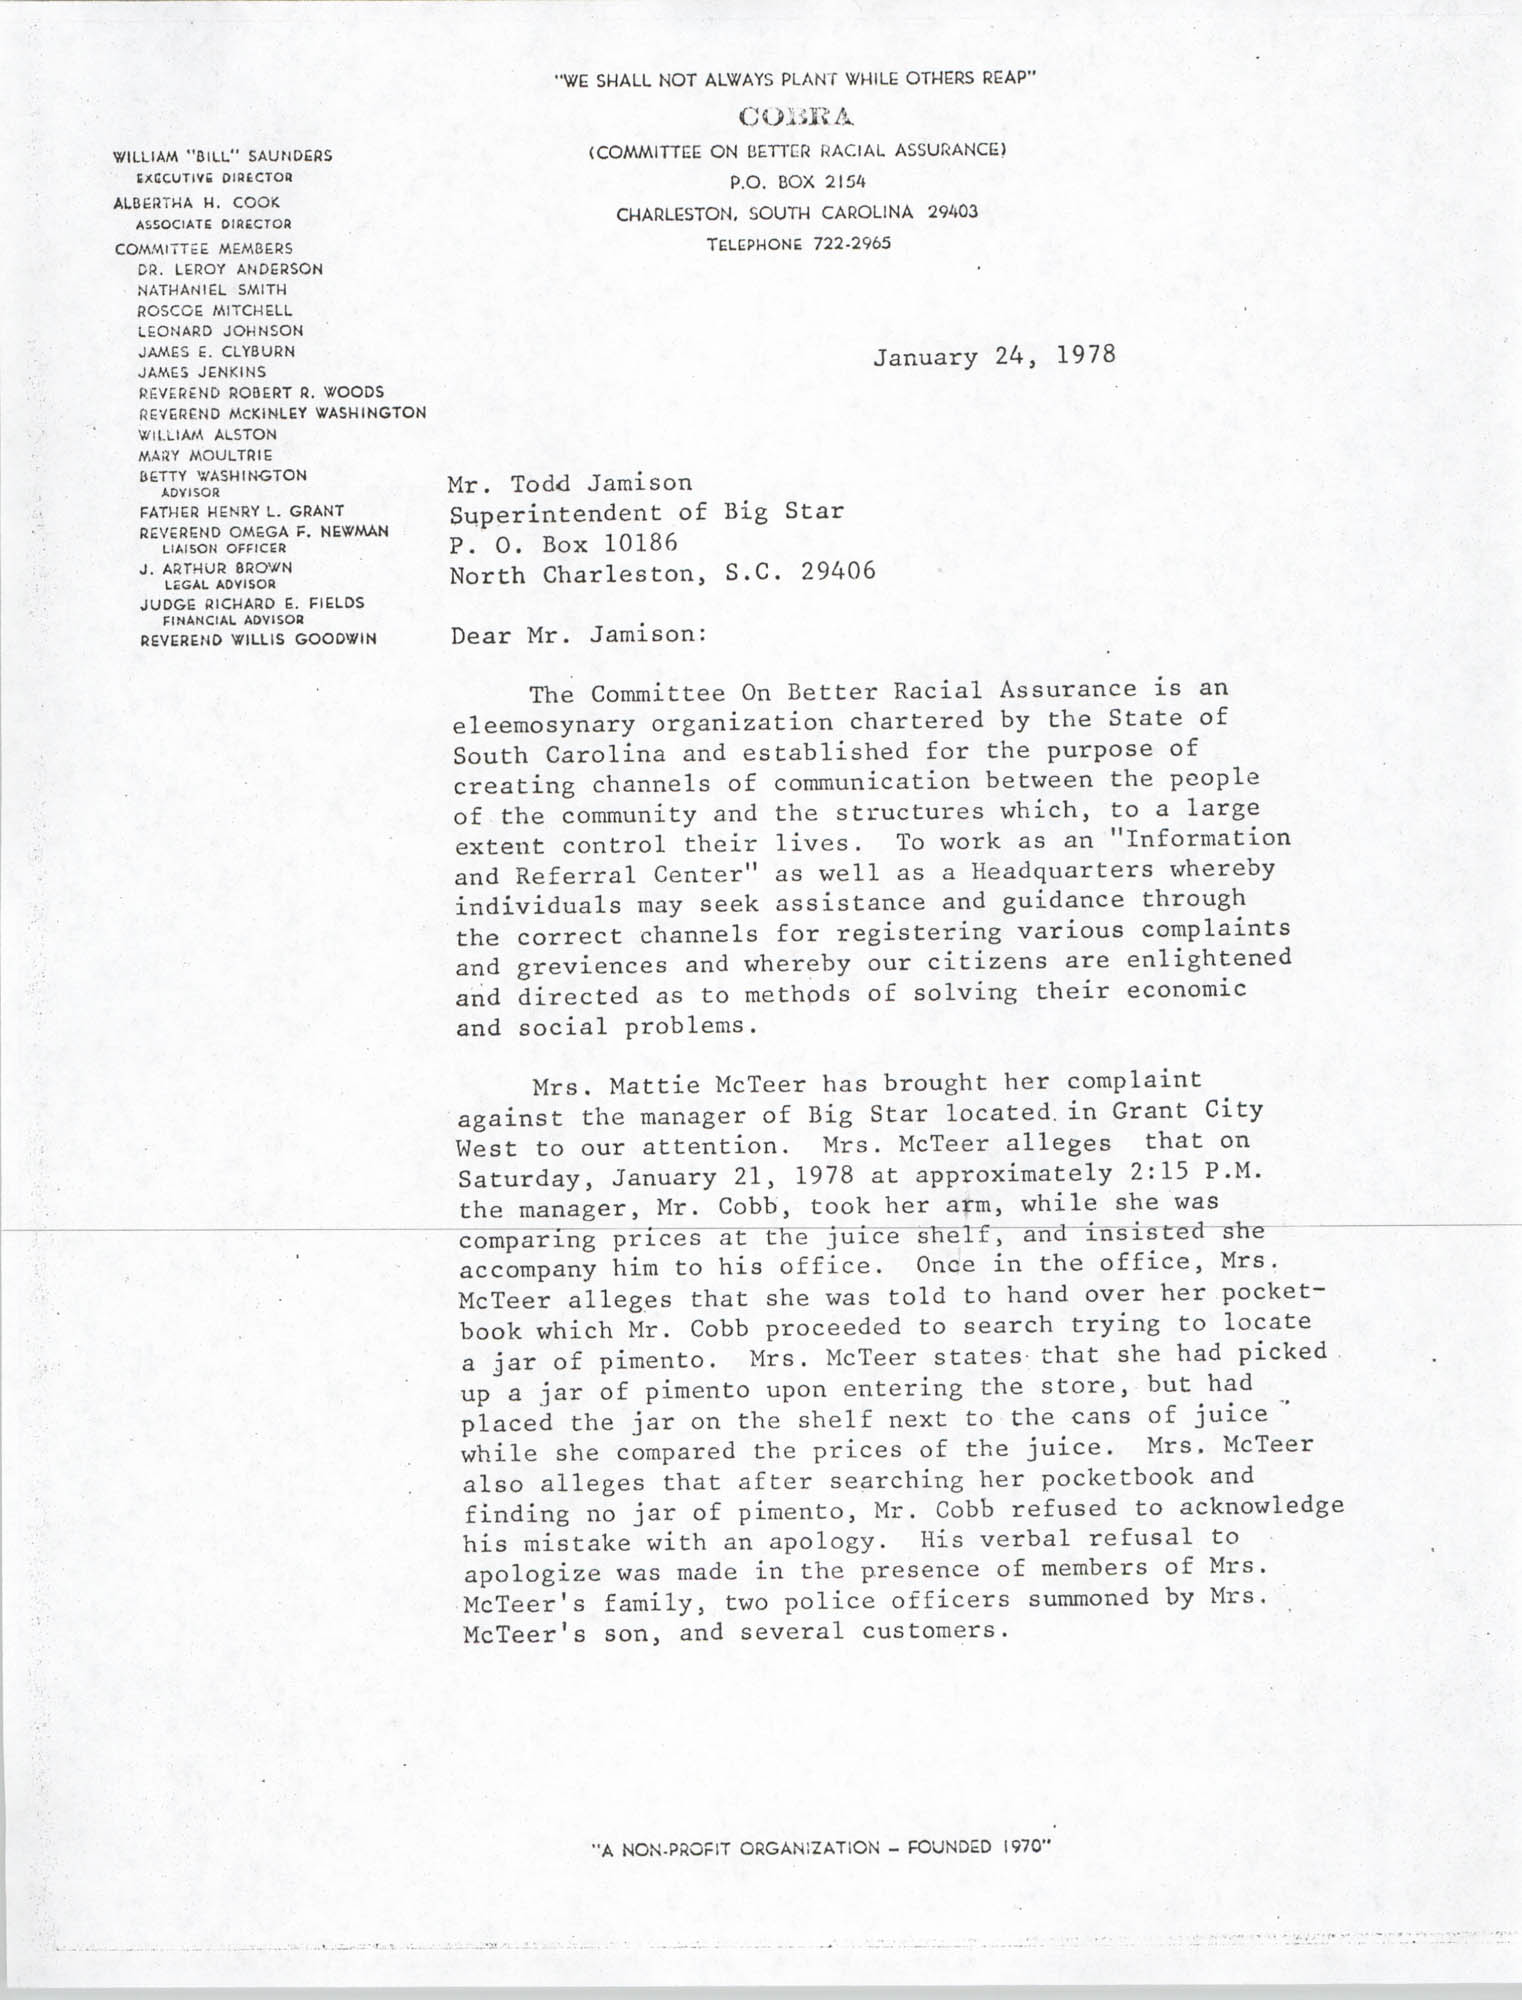 Letter from William Saunders to Todd Jamison, January 24, 1978